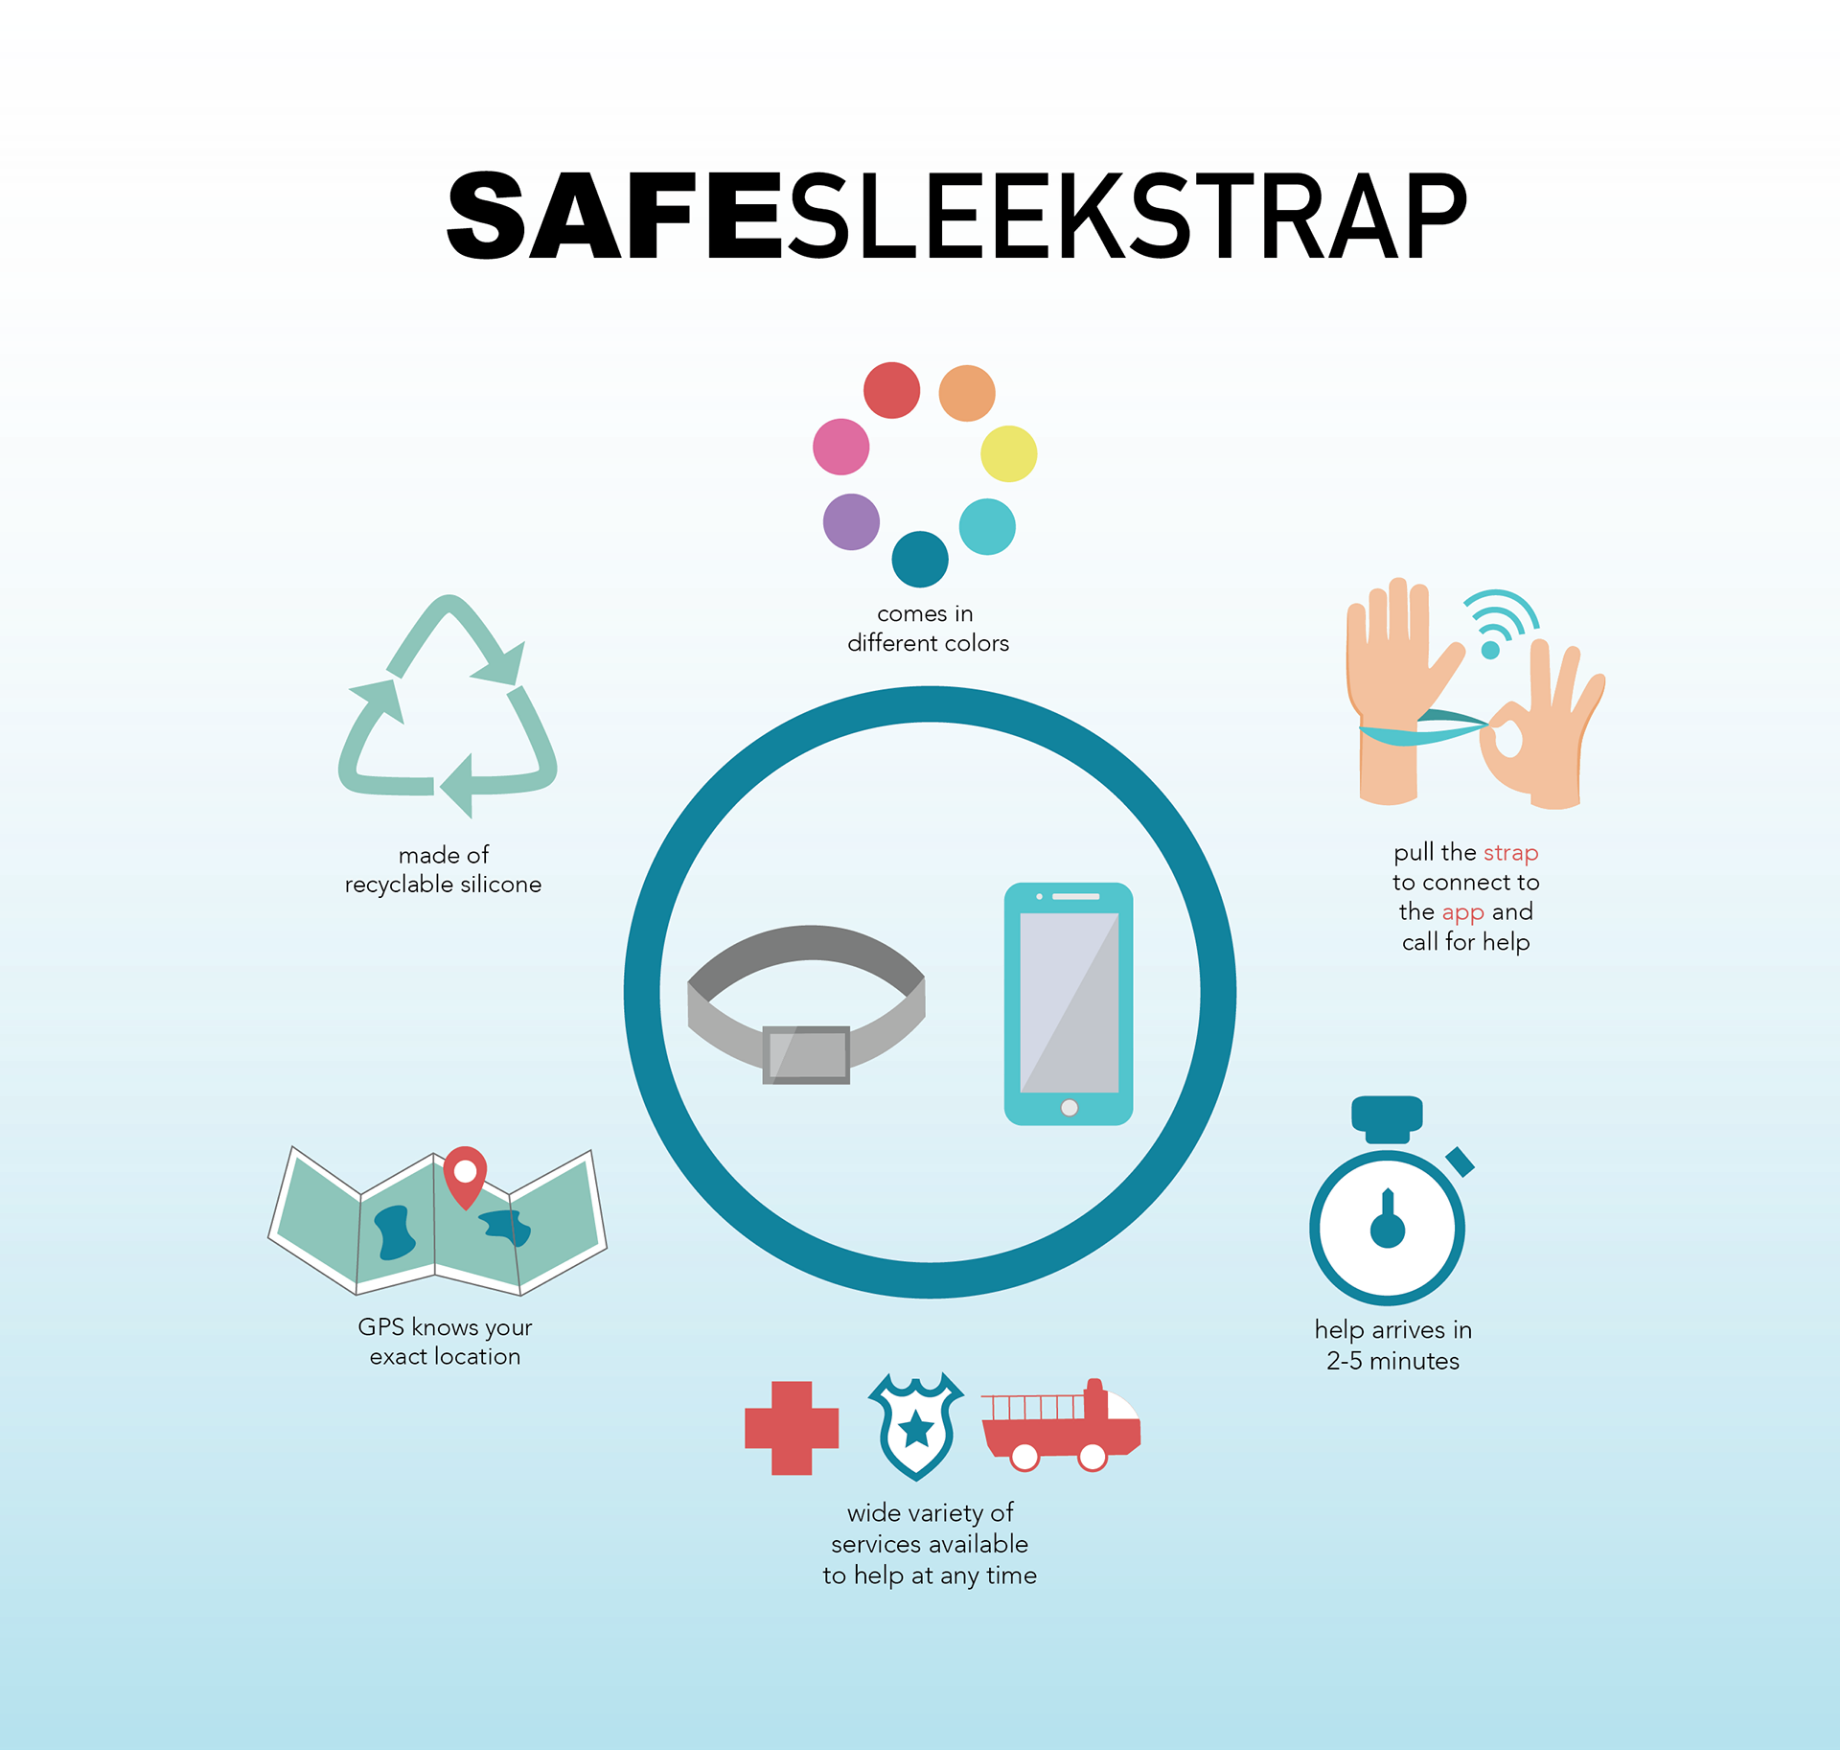 Safe Sleek Strap Infographic